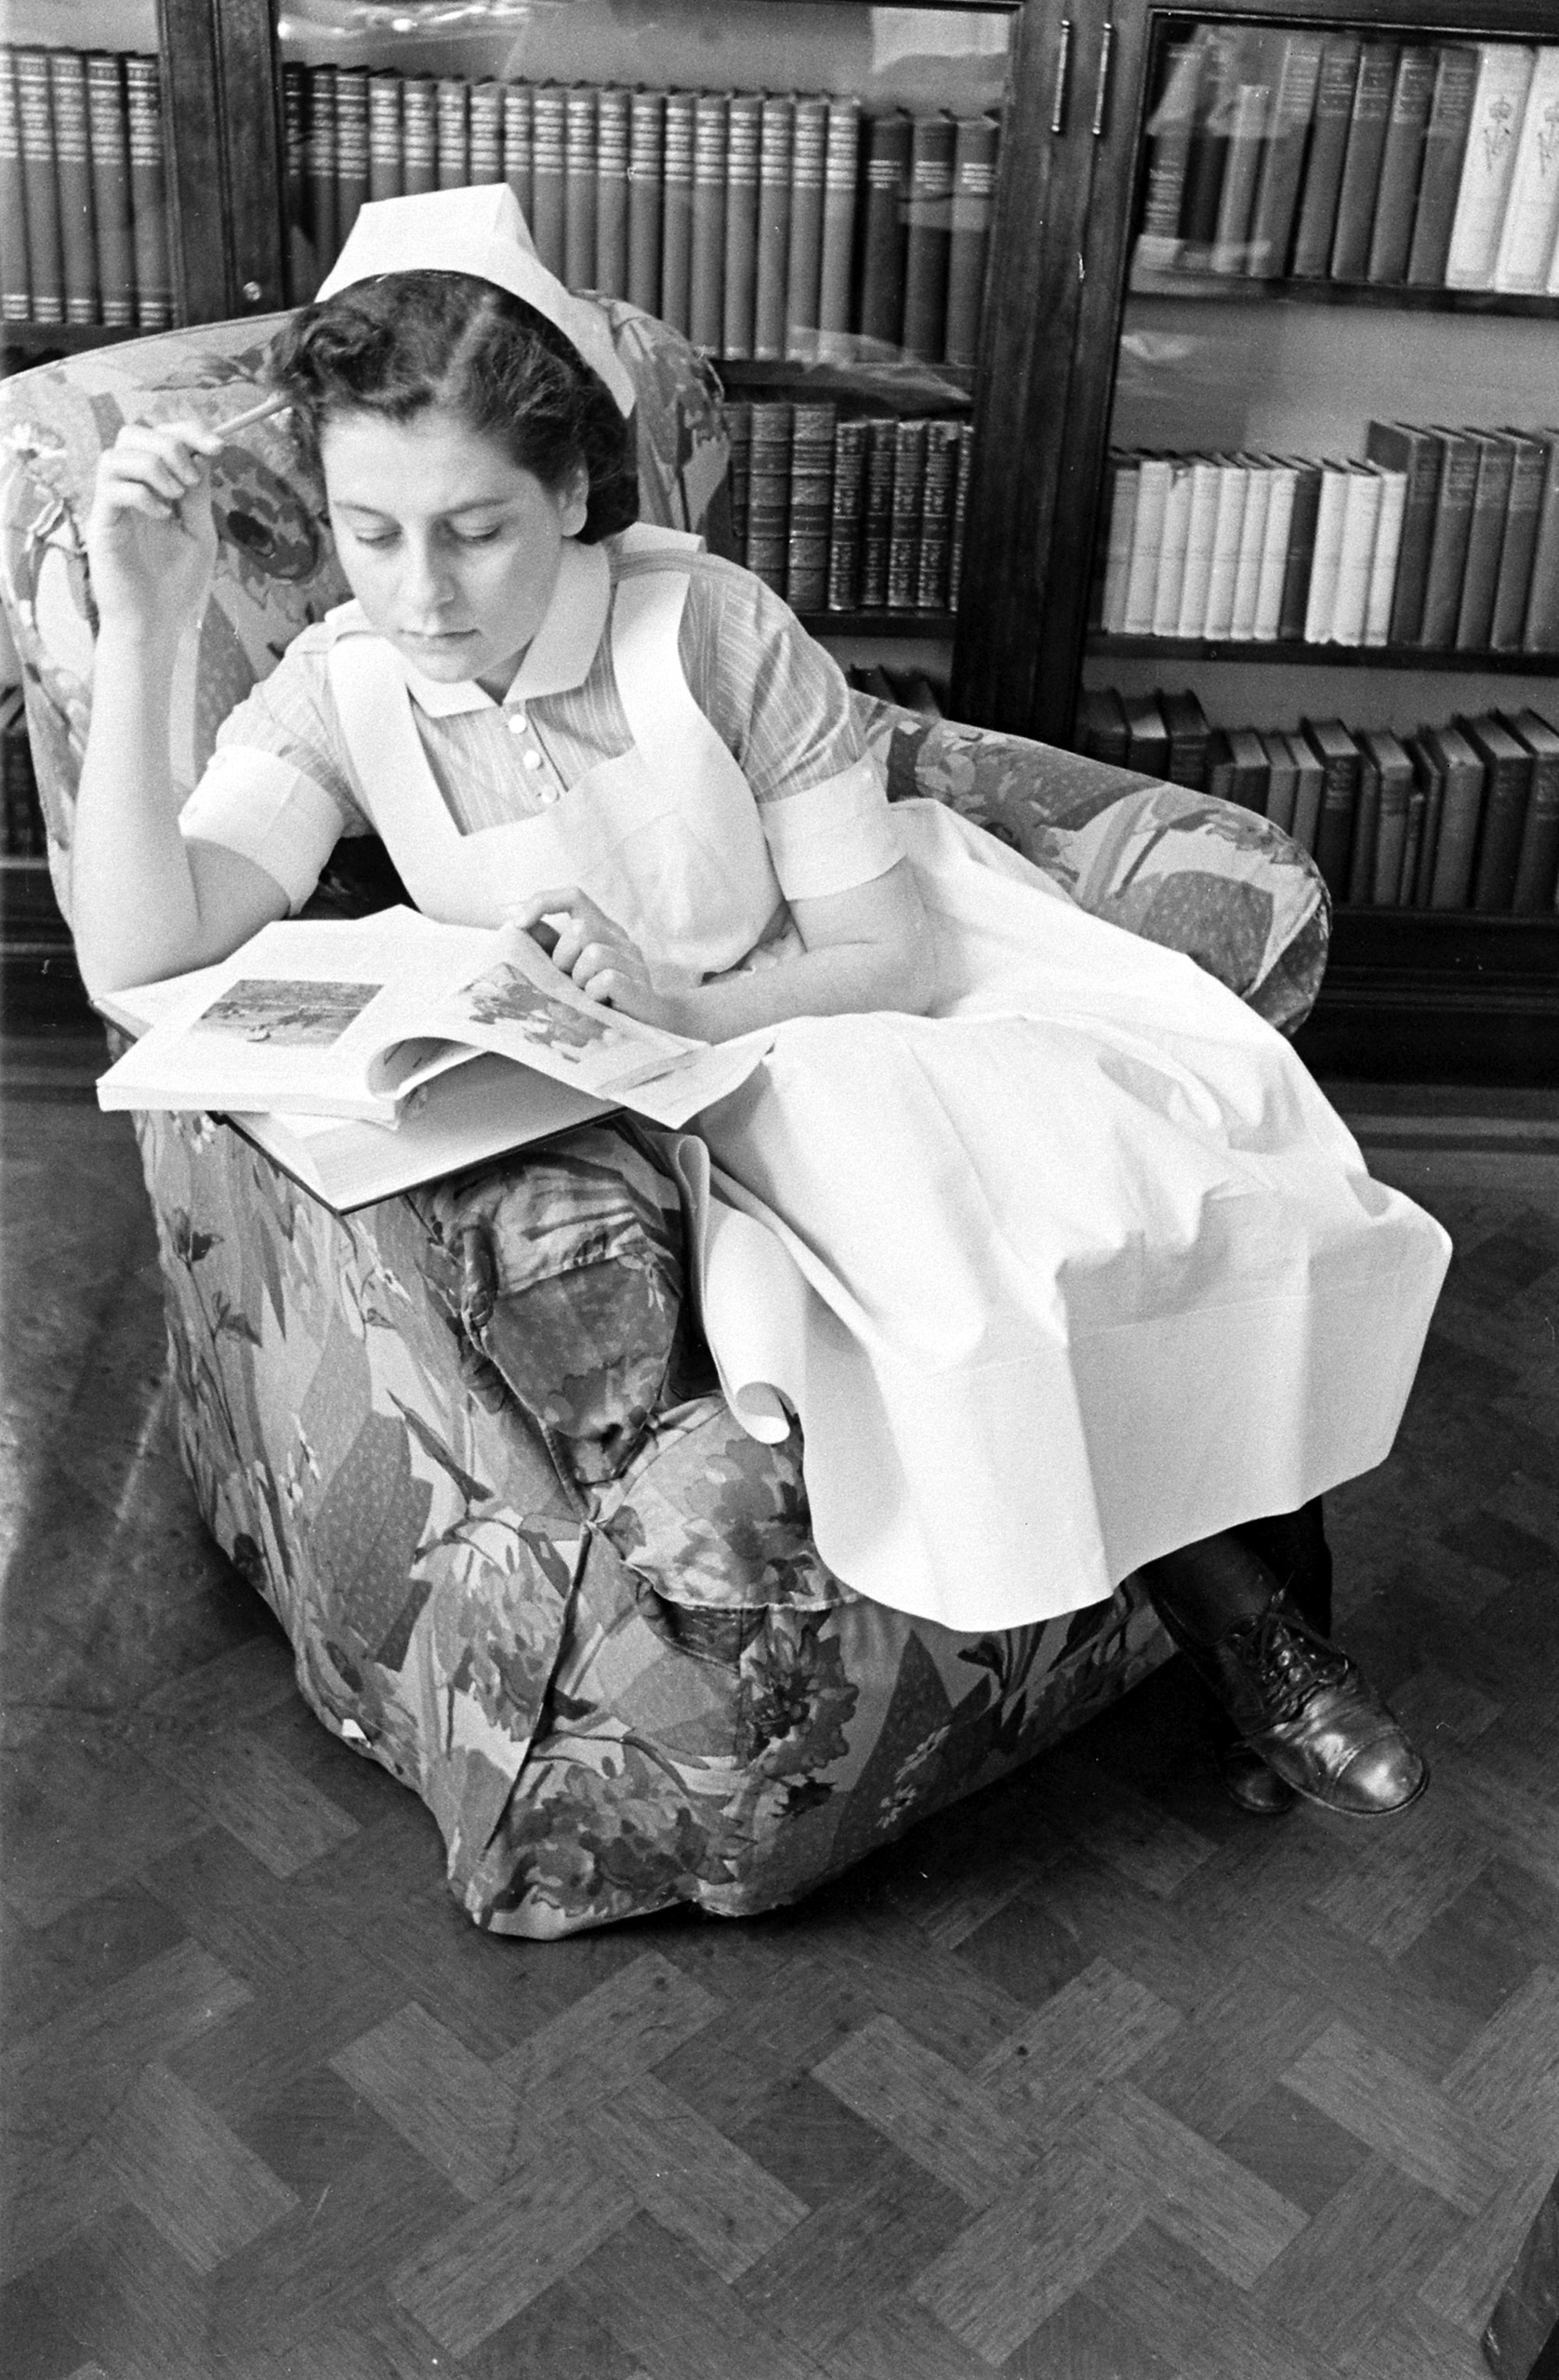 <b>Caption from LIFE.</b> After dinner nurses read in library or dance together in reception room.